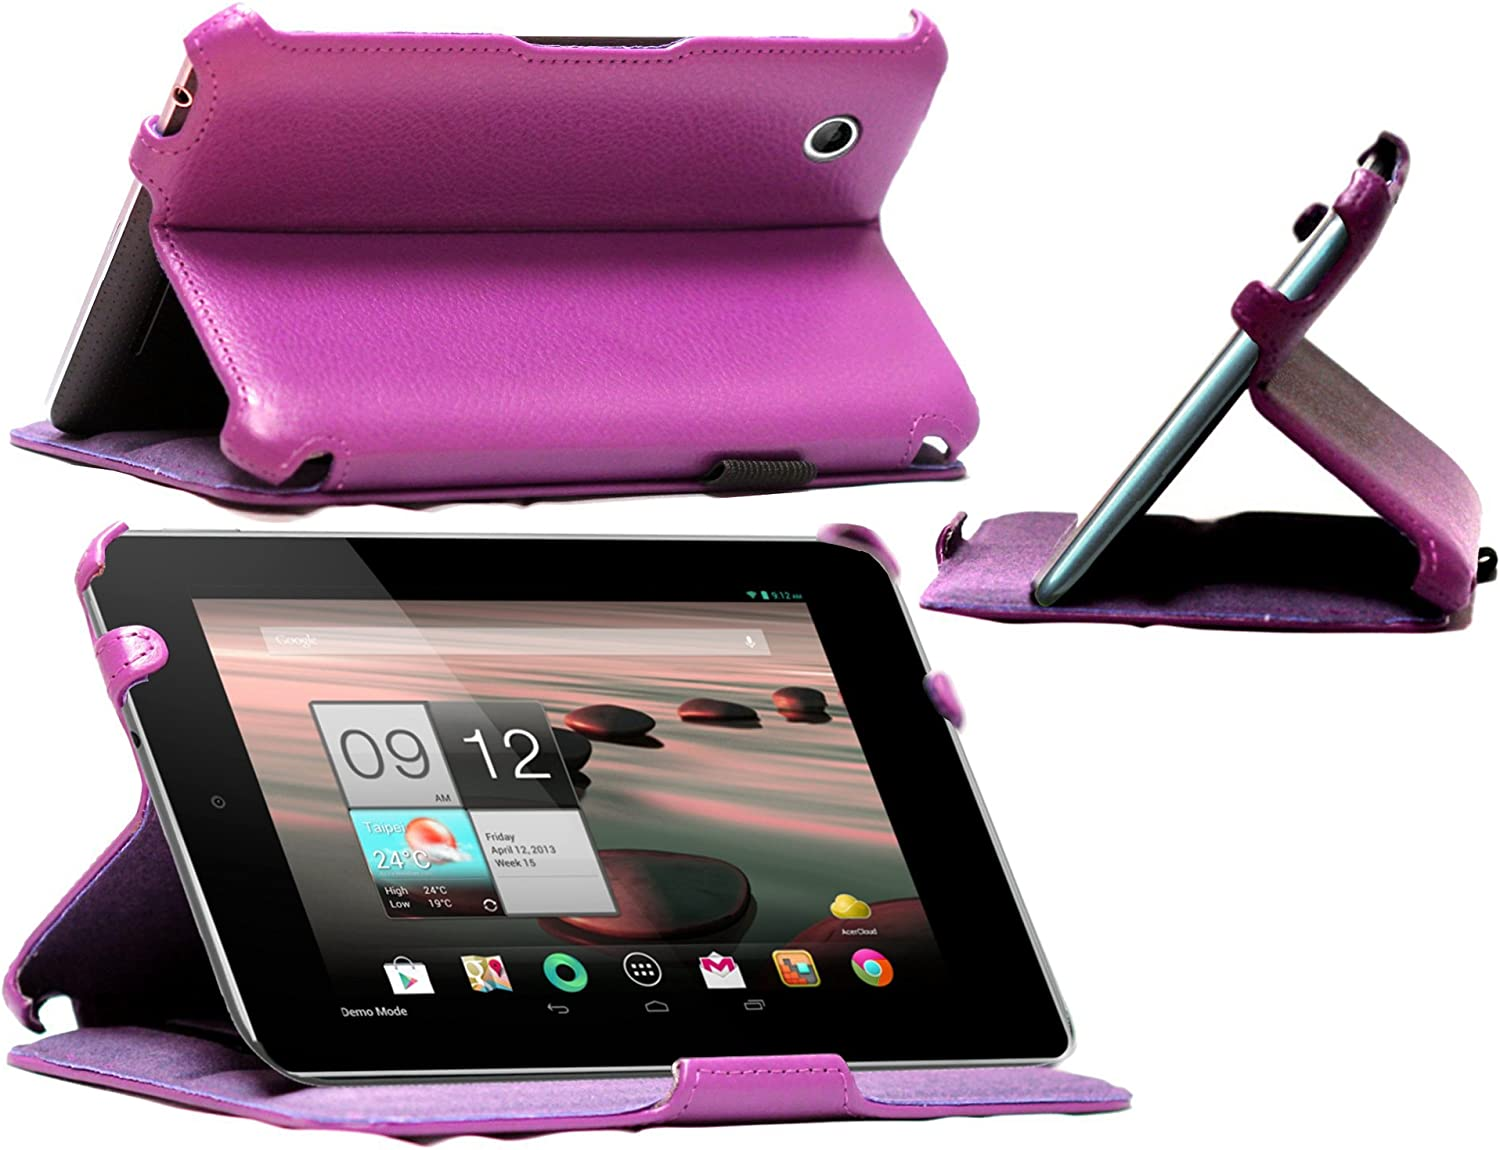 MiTAB Faux Leather Case Cover with Stand Compatible with The Acer Iconia A1 810 7.9 Inch (Multi Stand case, Purple)